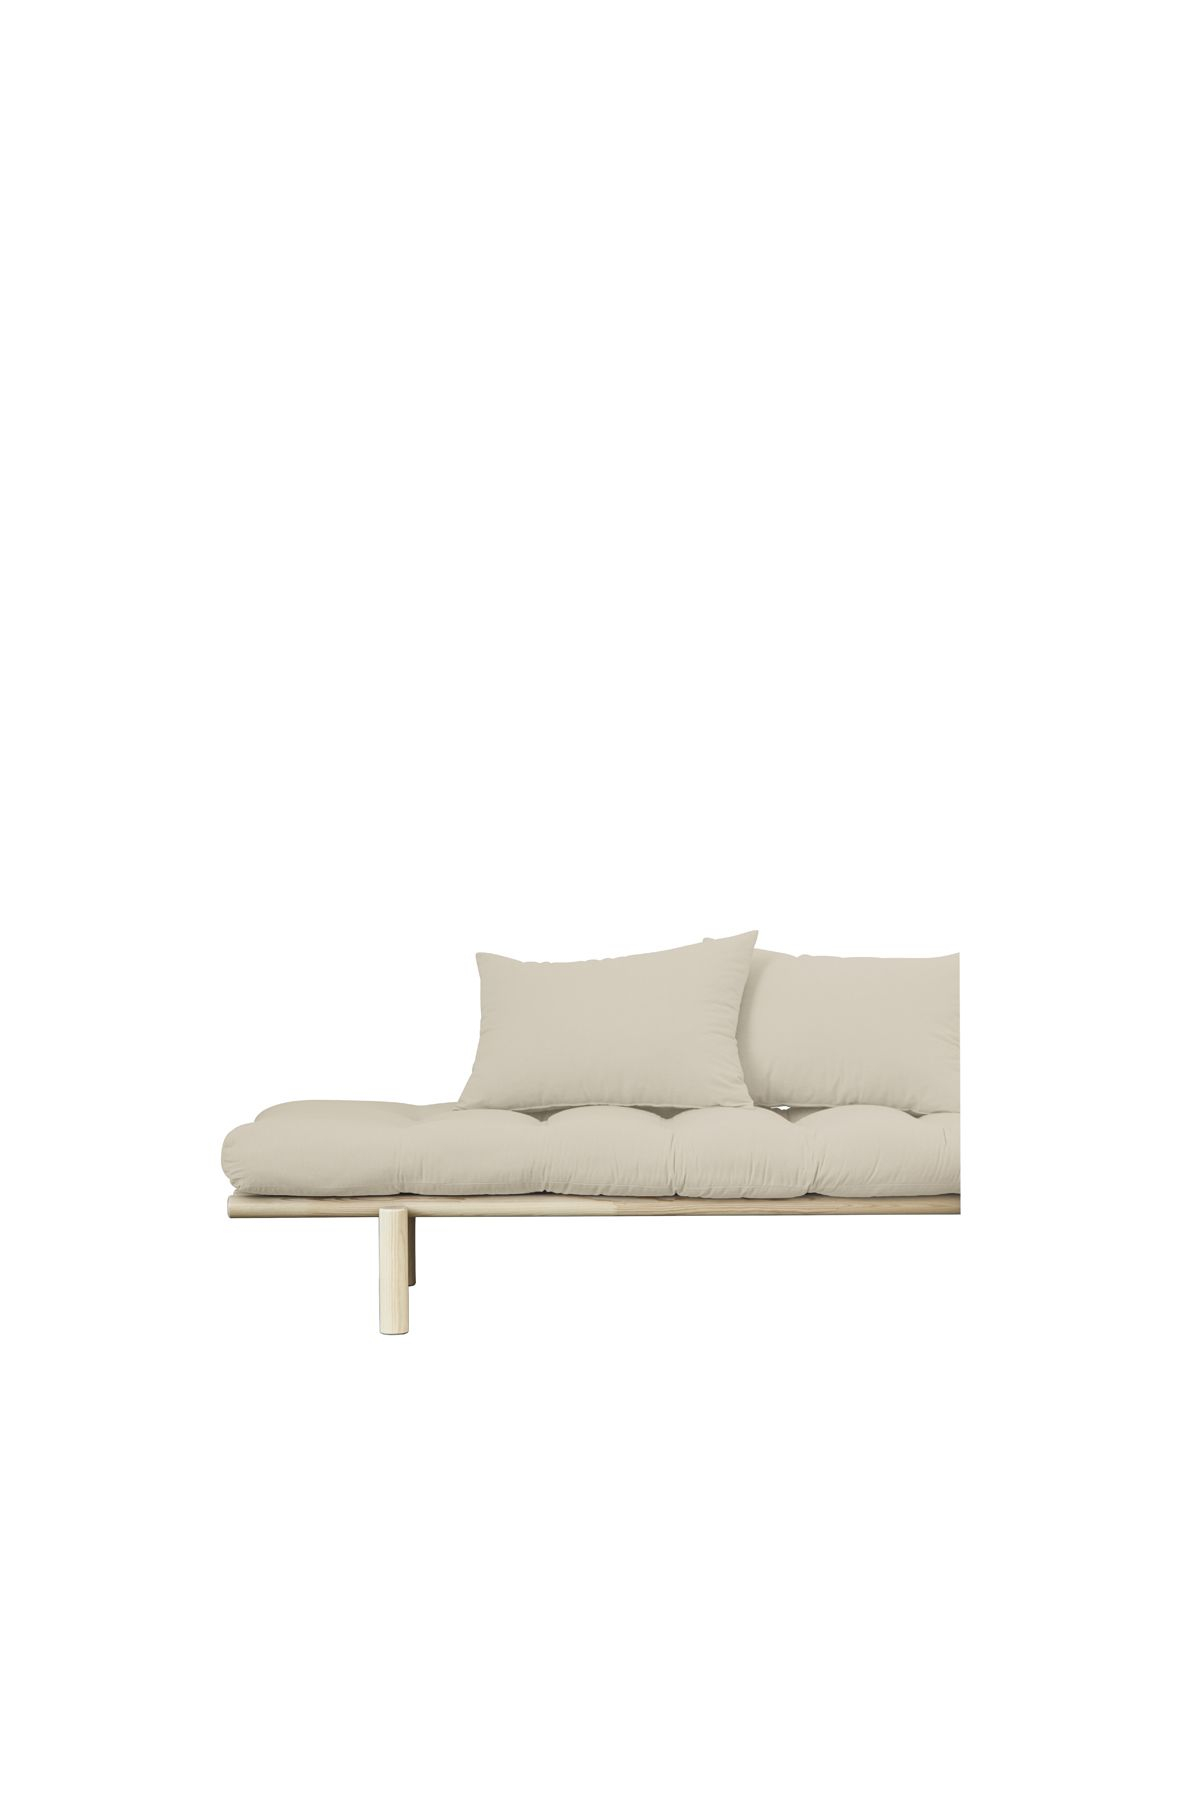 Pace Daybed med ryghynder, 75x200, Vision